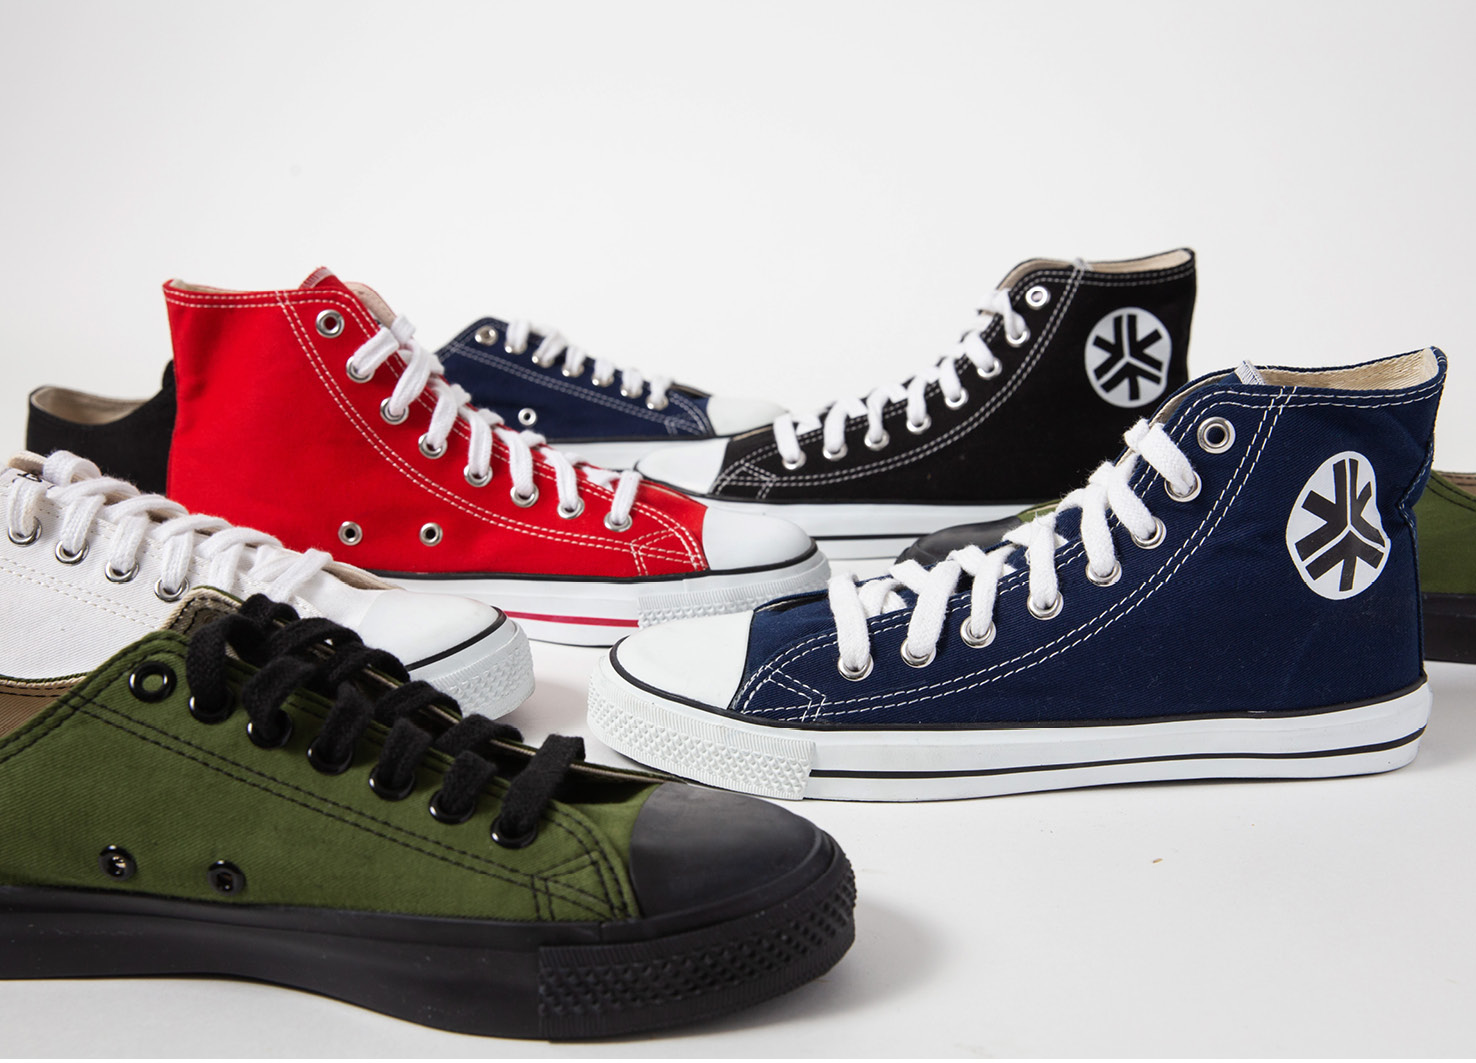 Ethical and sustainable sneakers – Etiko